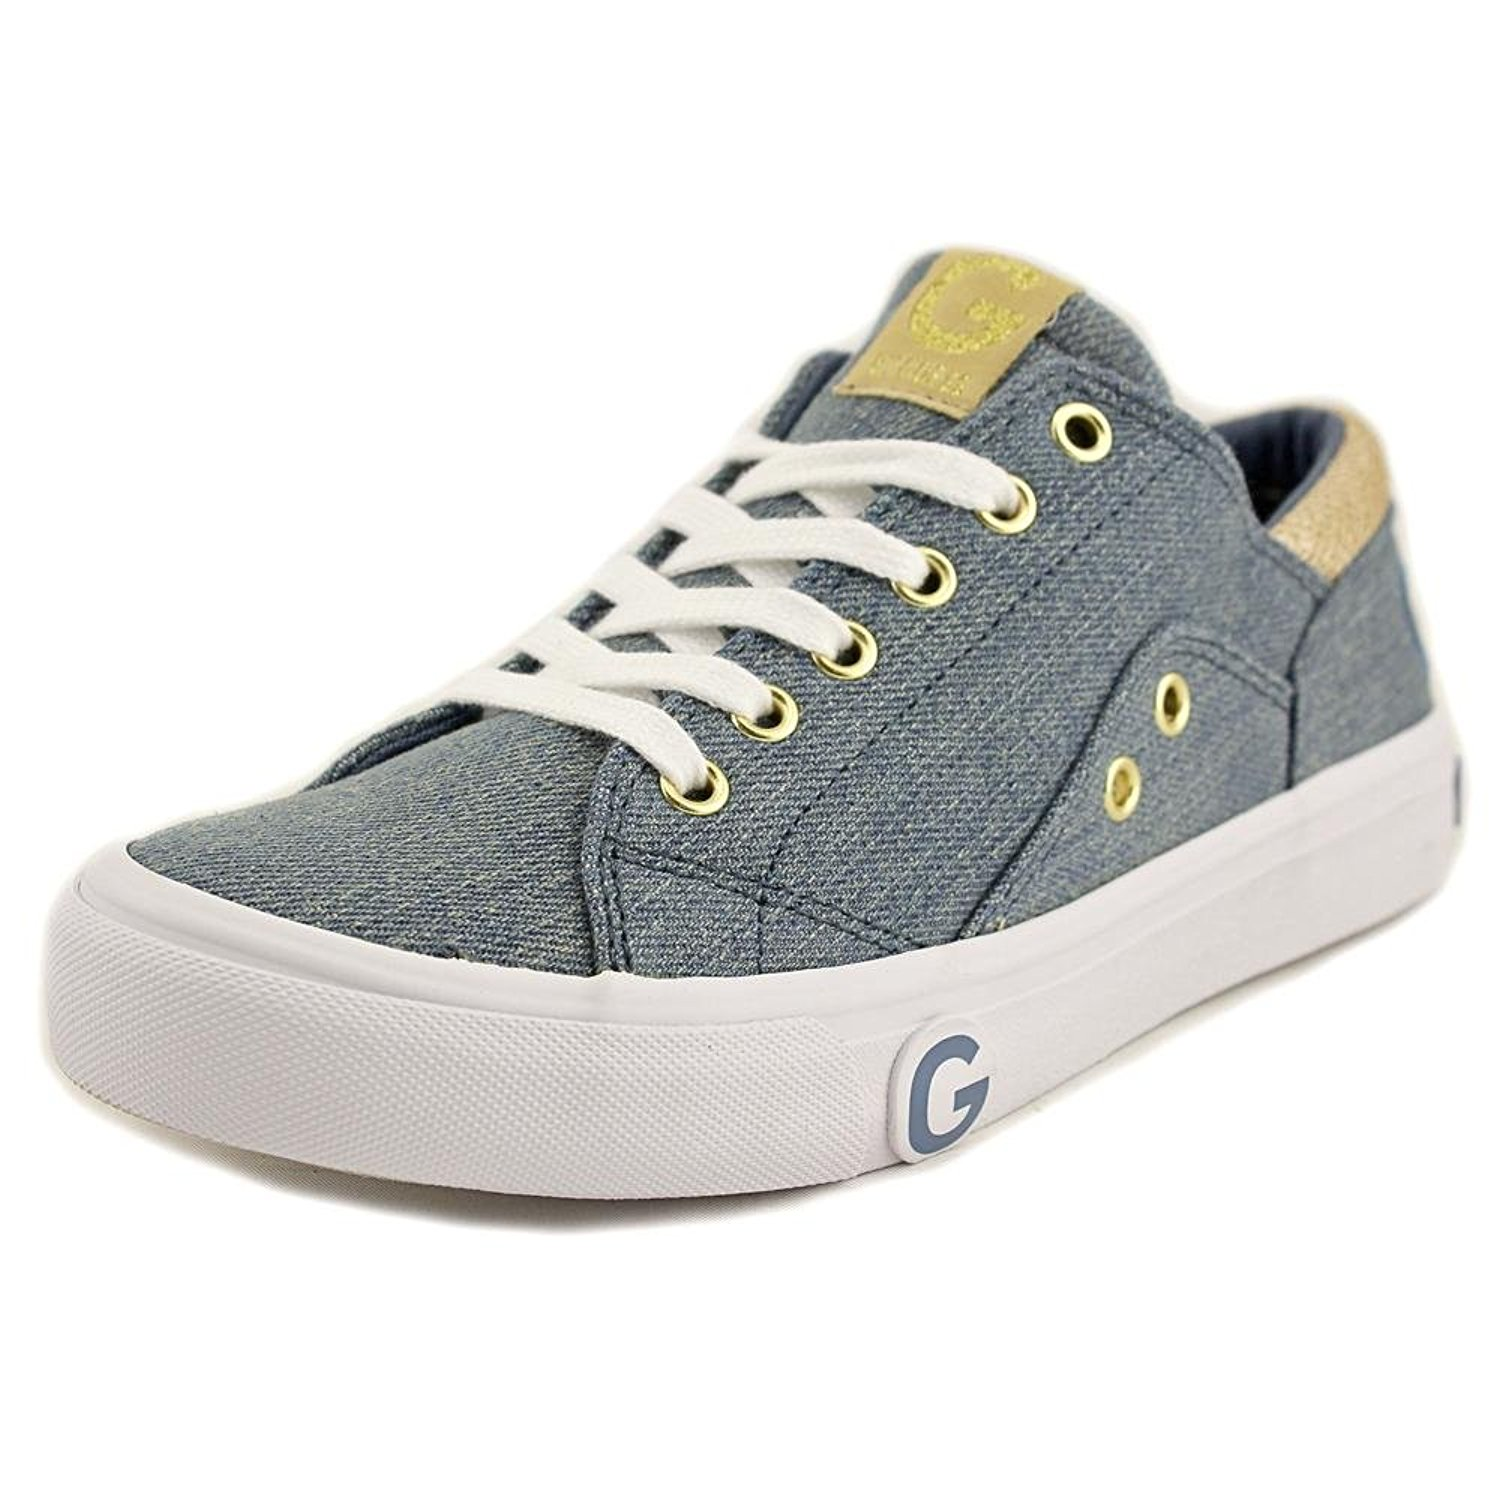 G By Guess Chai 3 Womens Fashion Scarpe da ginnastica Medium Blue tessuto 8 US/6 UK